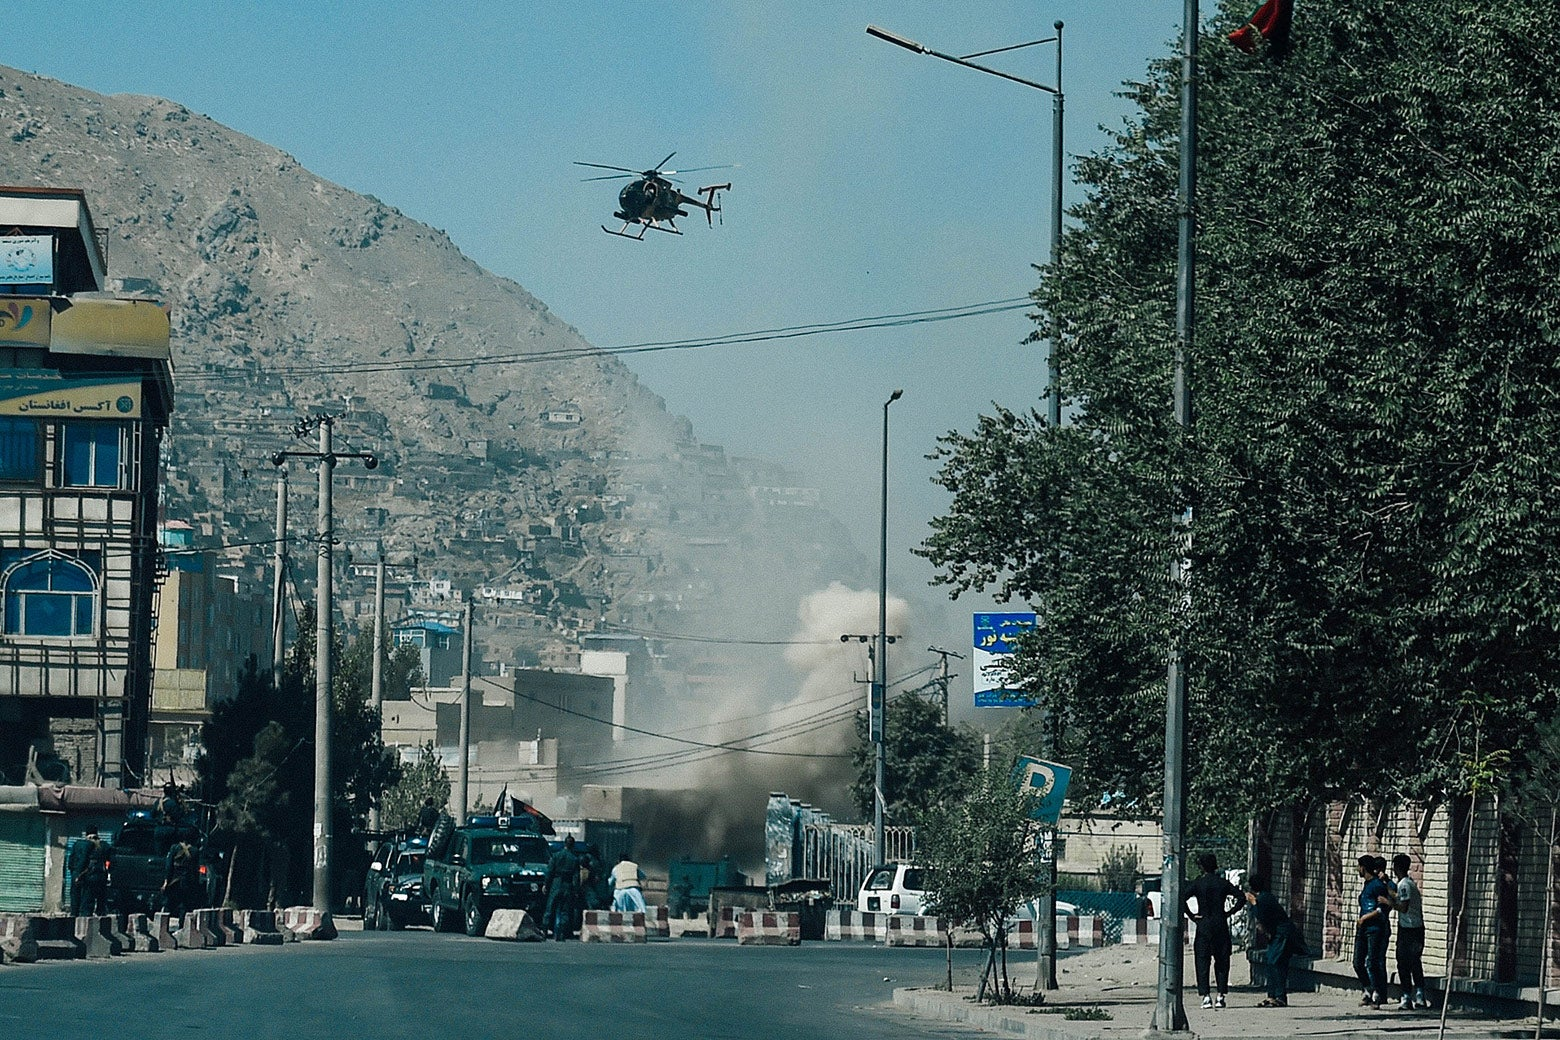 Smoke rises above a street with a helicopter overhead.